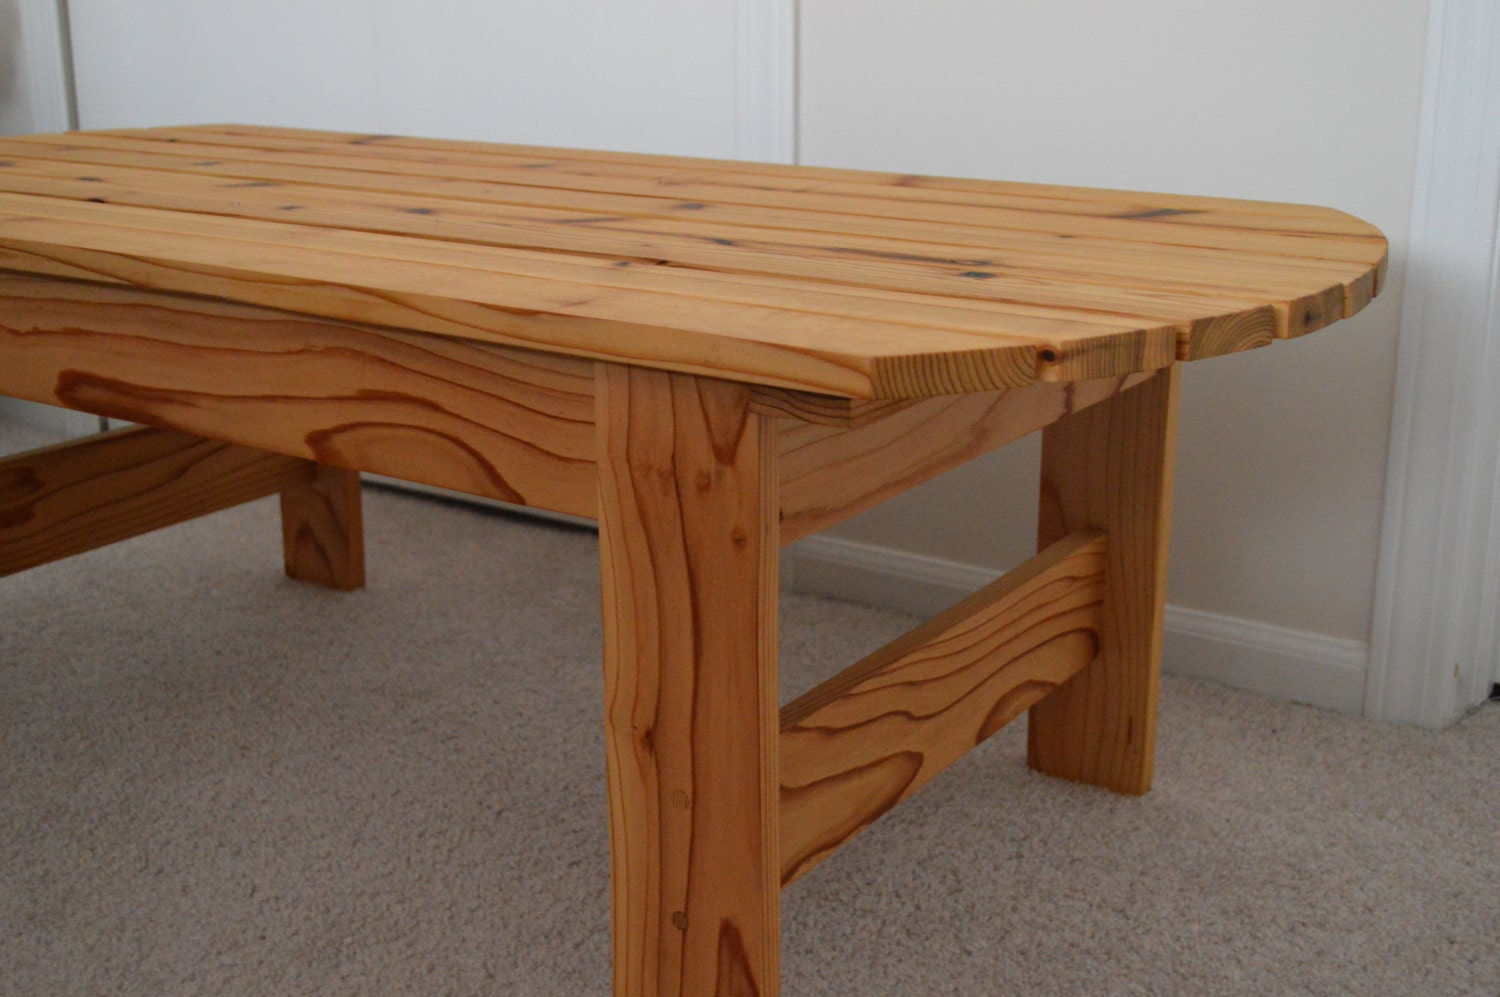 Cedar Adirondack Coffee Table Patio Table By InkedWoodworking